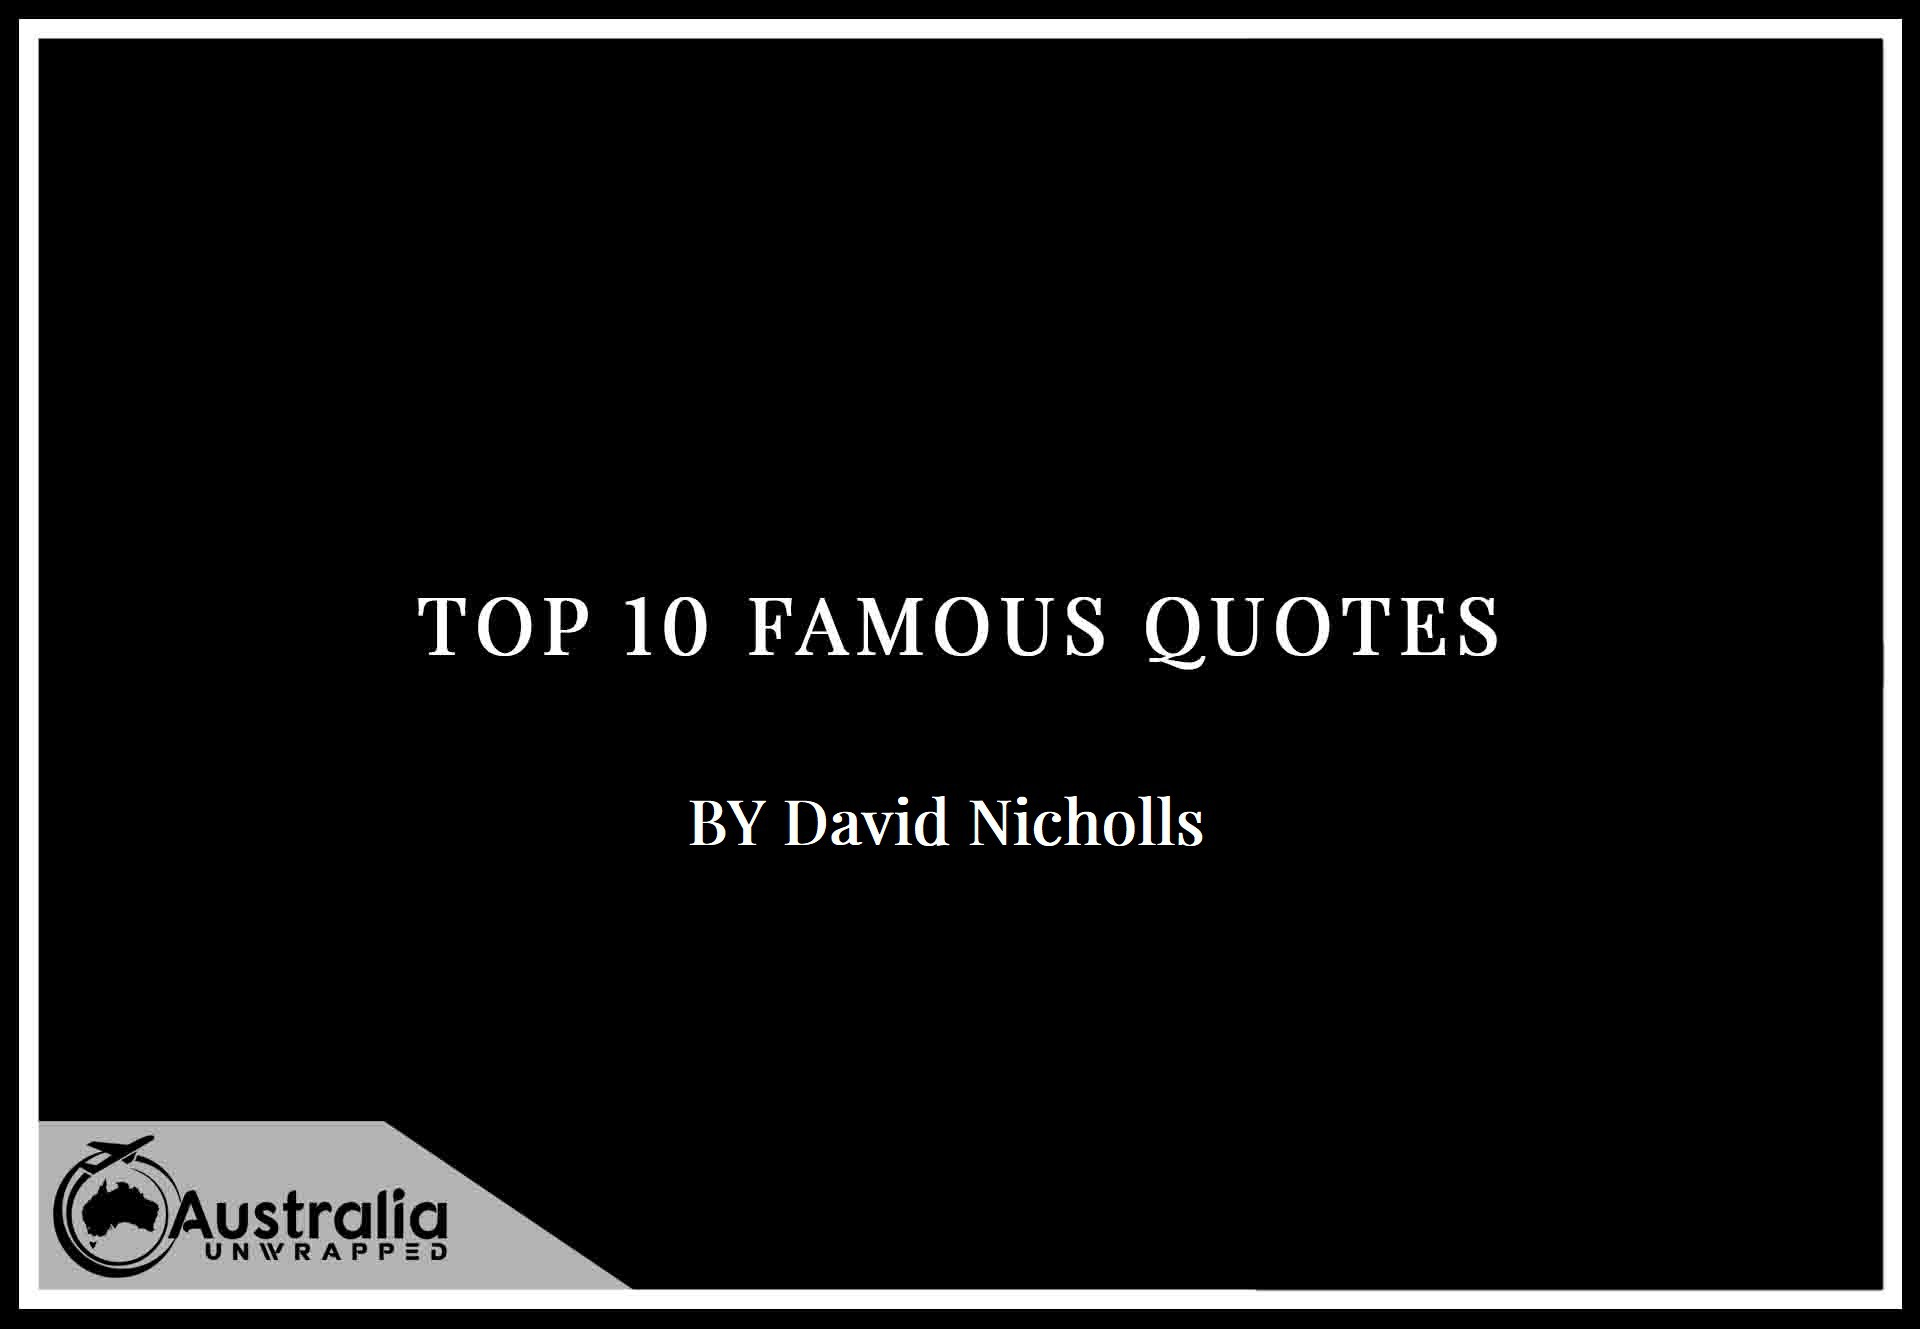 Top 10 Famous Quotes by Author David Nicholls